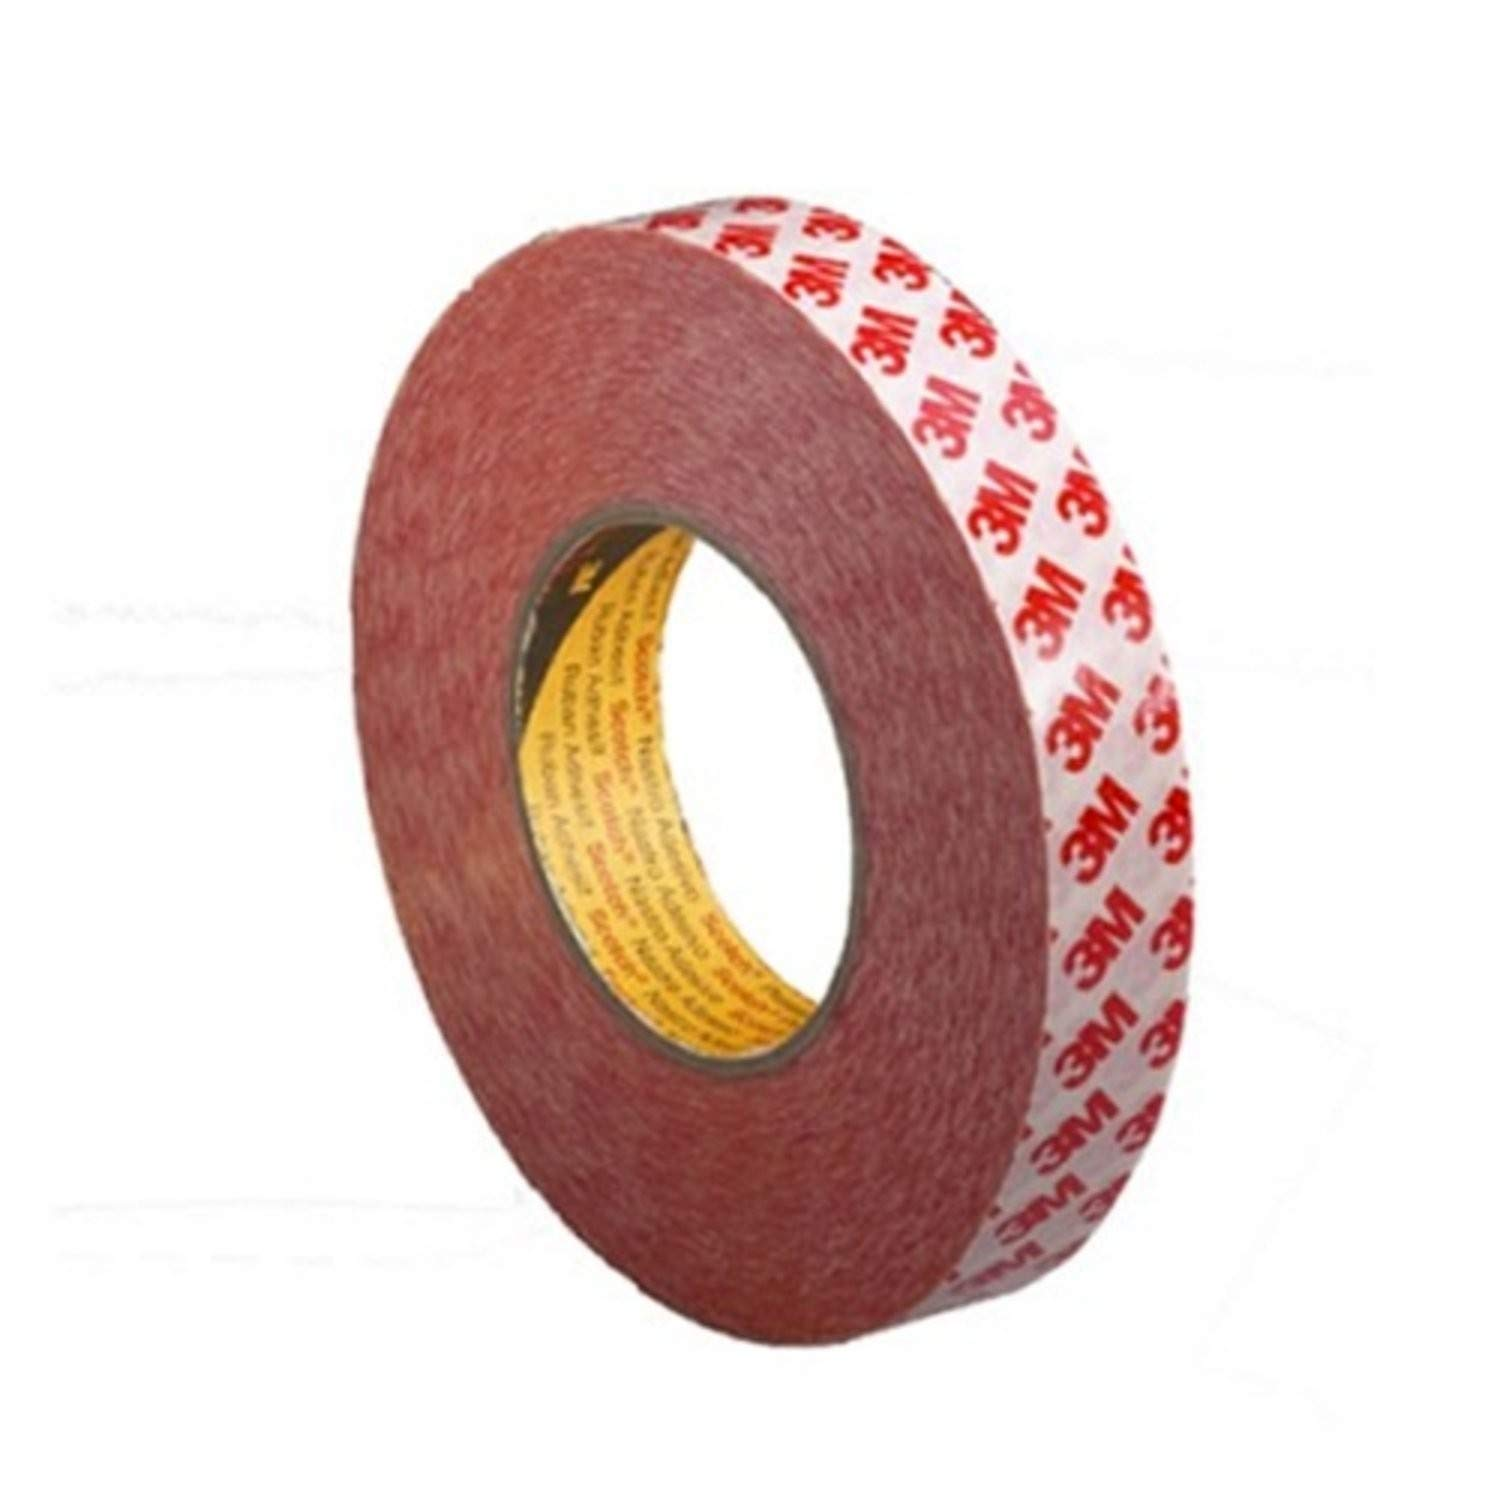 3M™ 9088-200 Double-Sided High Performance 20mm x 50m Tape